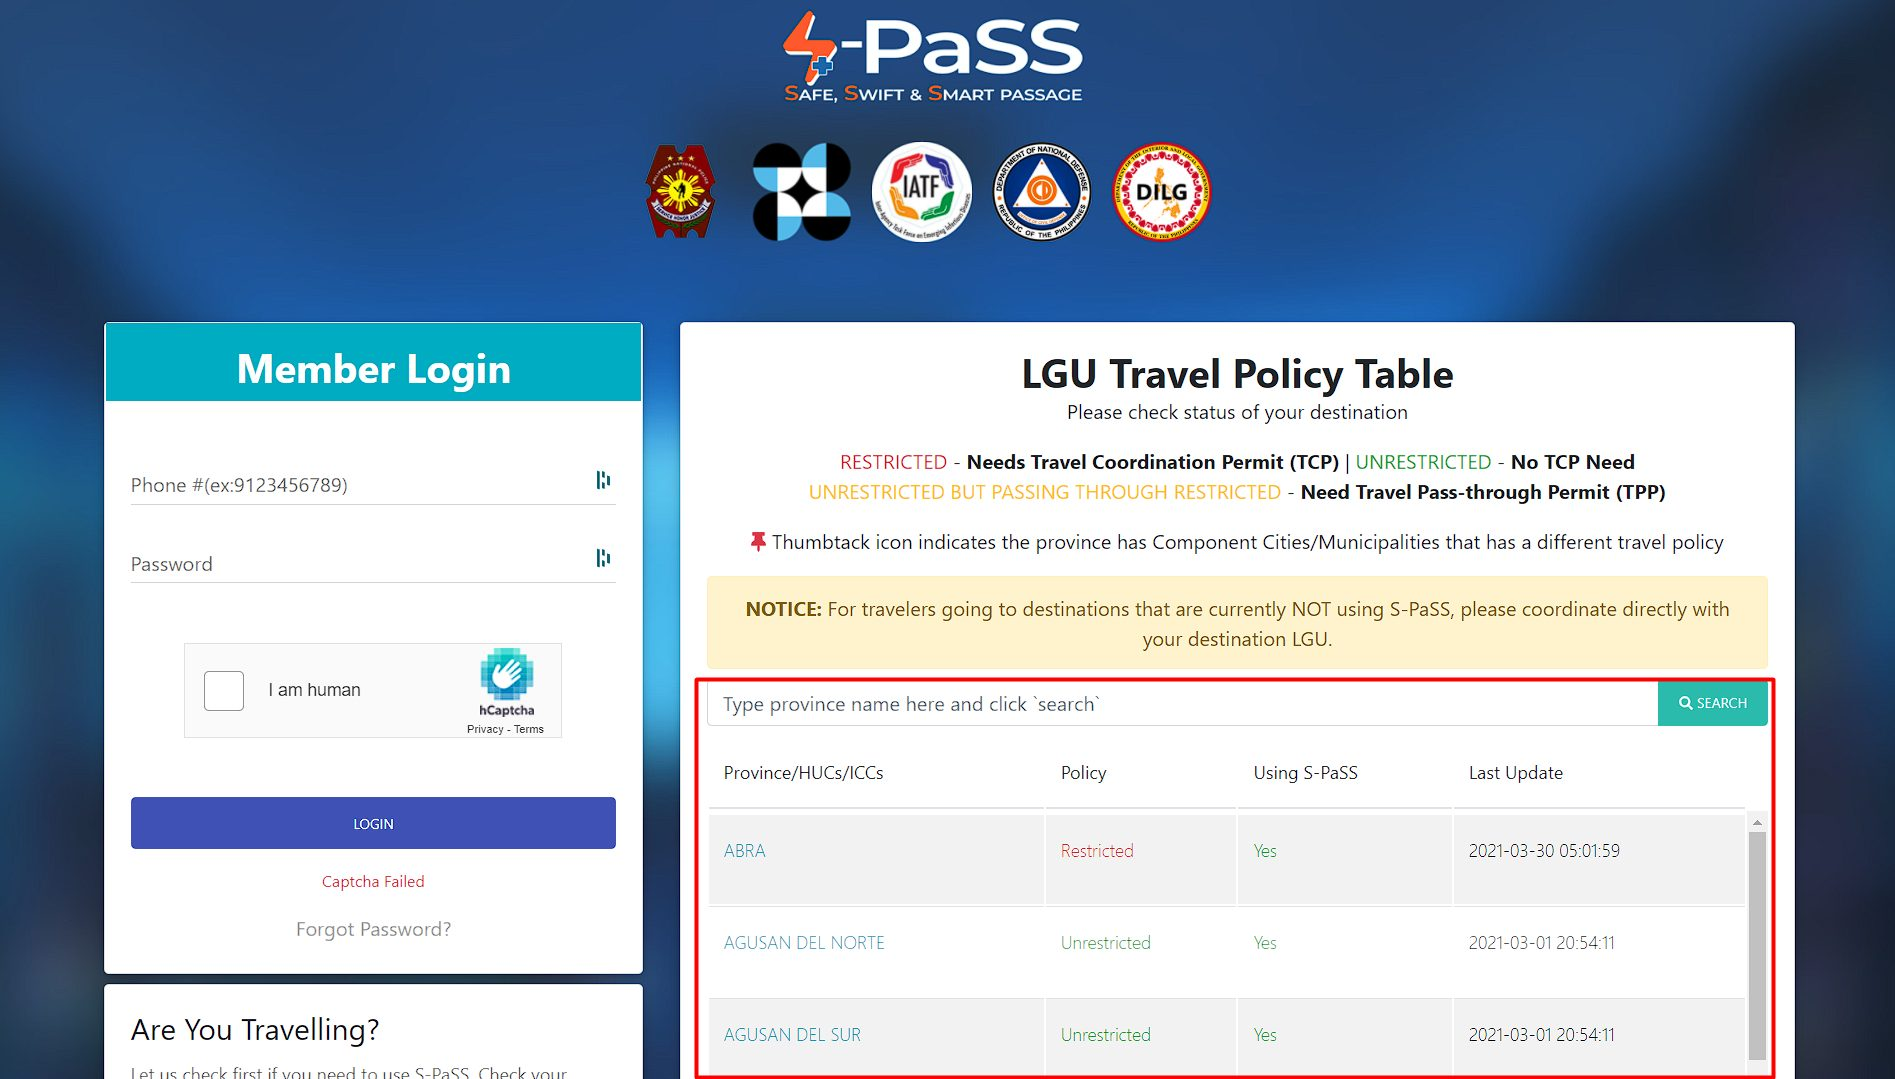 s-pass-travel-policy-table